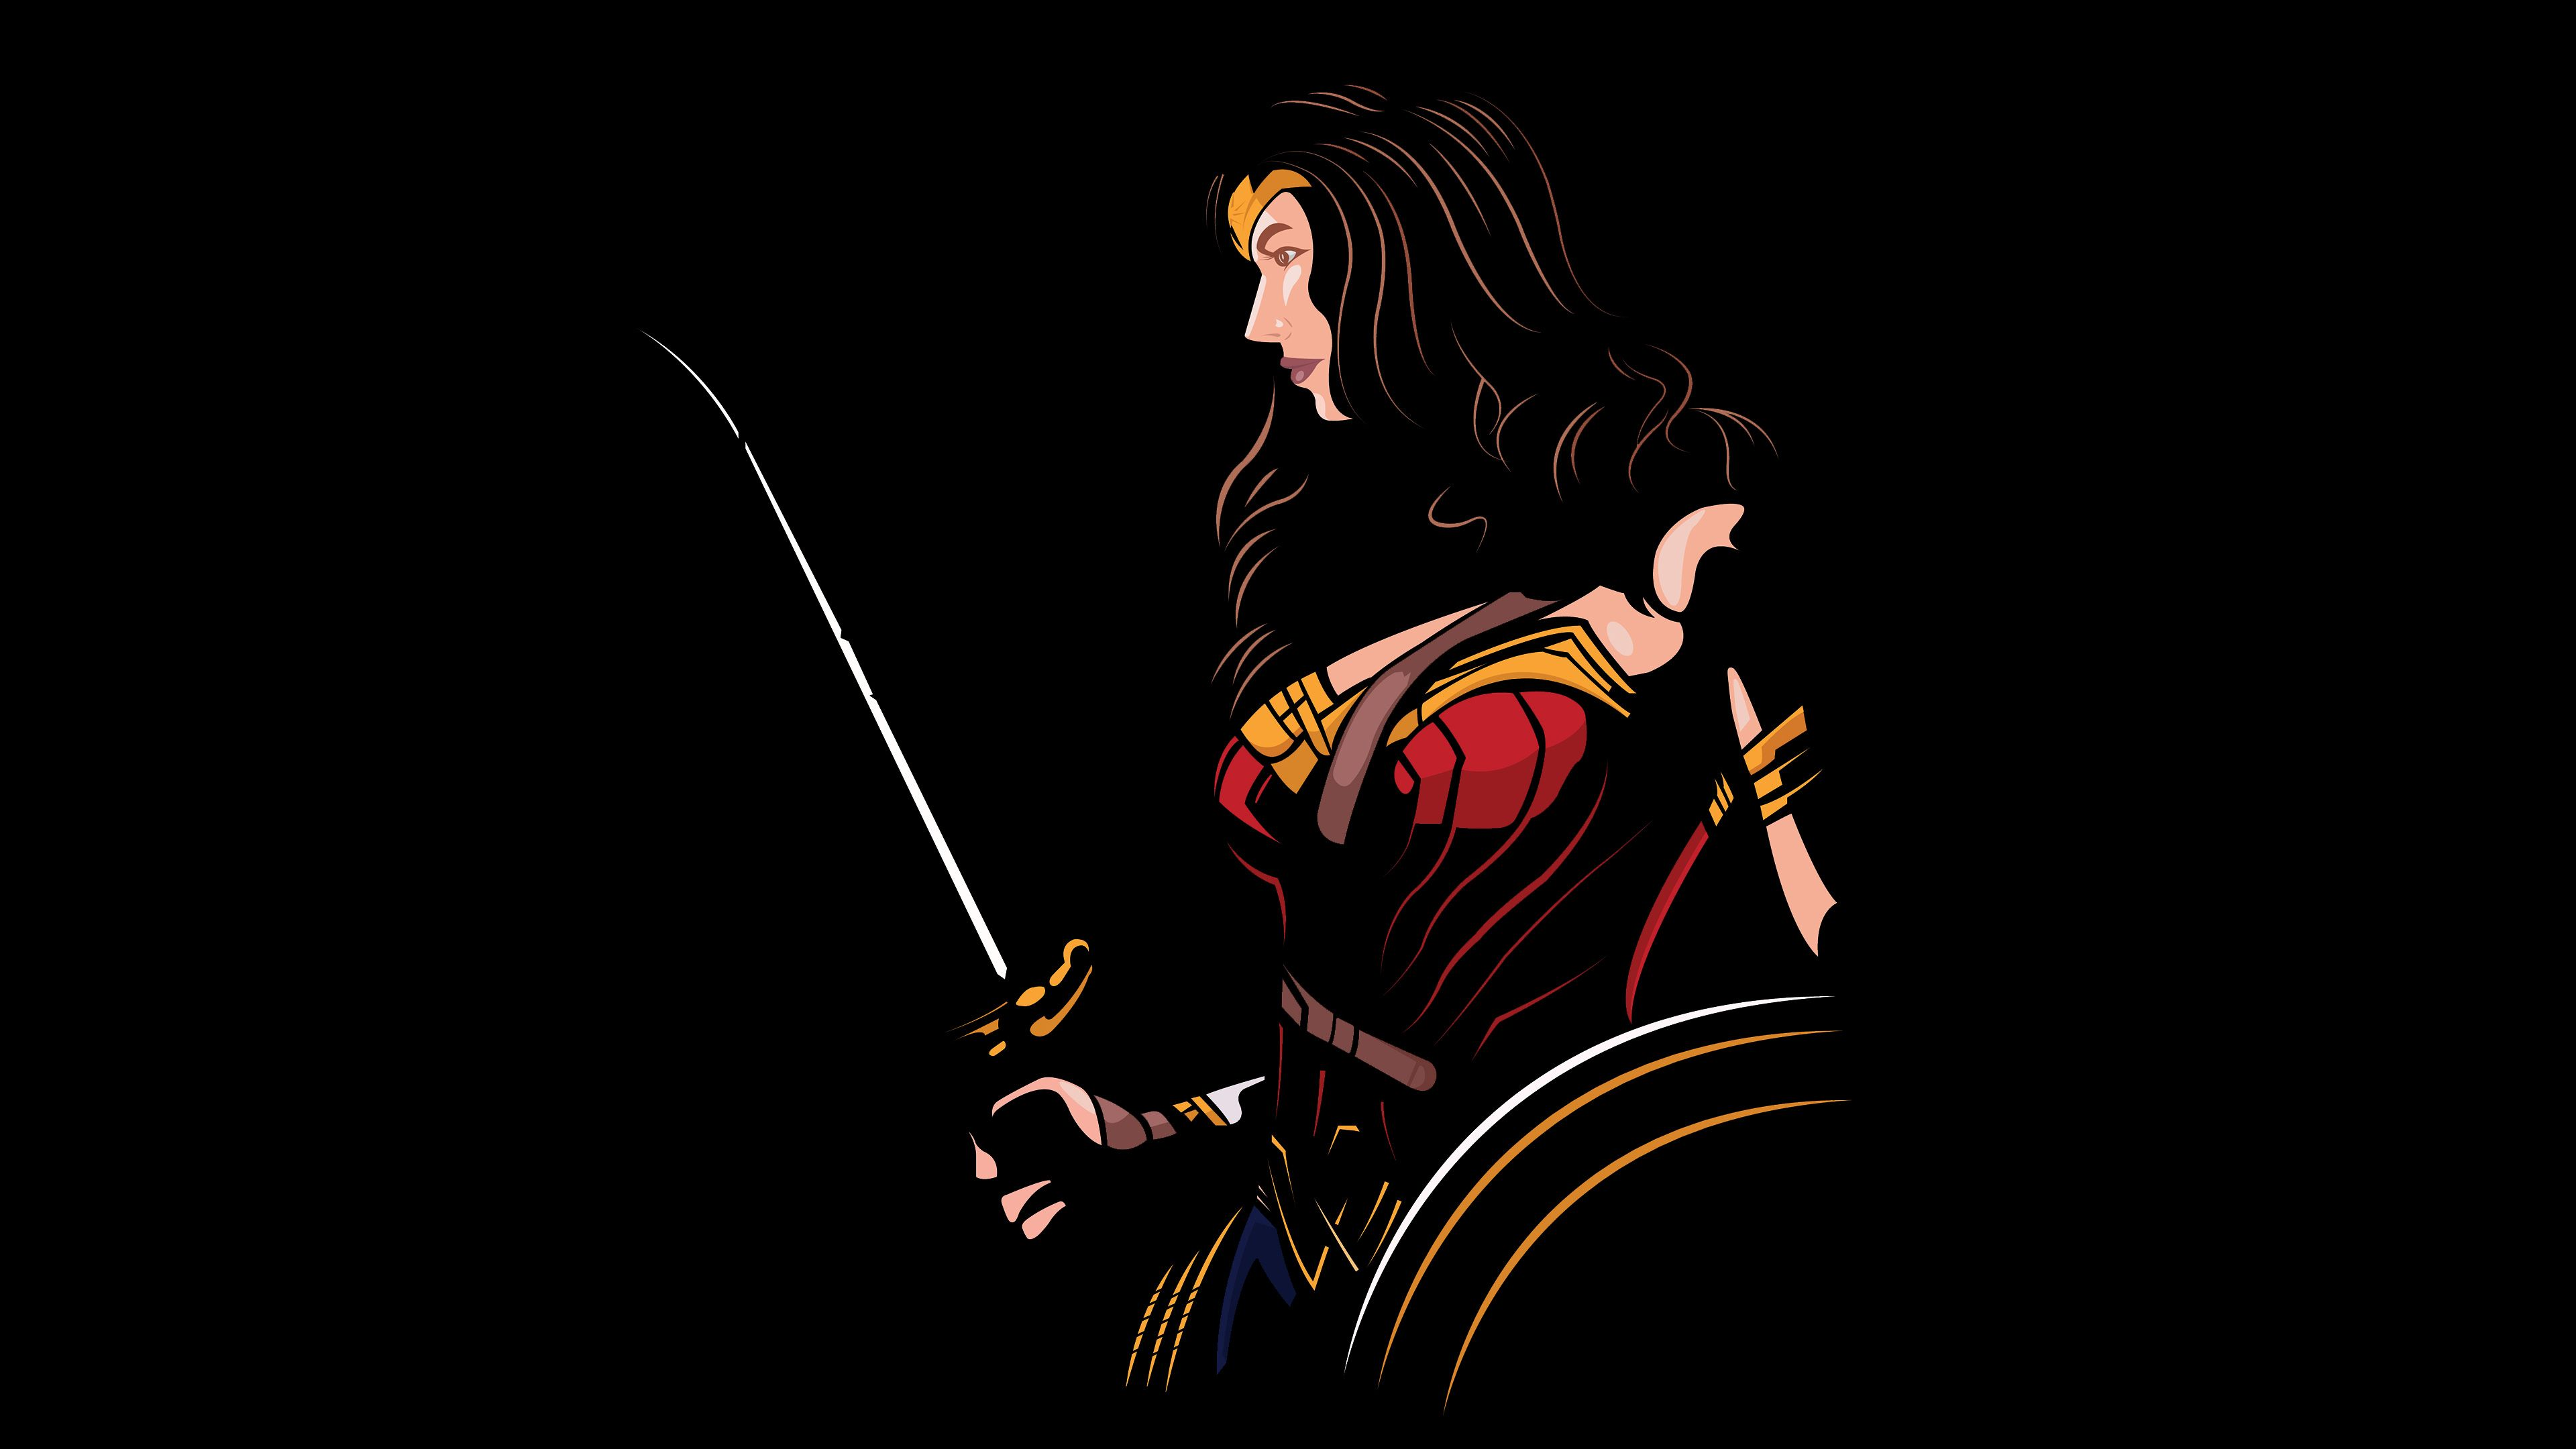 Wonder Woman 4k Minimalism Wonder Woman Wallpapers Superheroes Wallpapers Minimalism Wallpapers Logo Wal Minimalist Wallpaper Wonder Woman Desktop Wallpaper